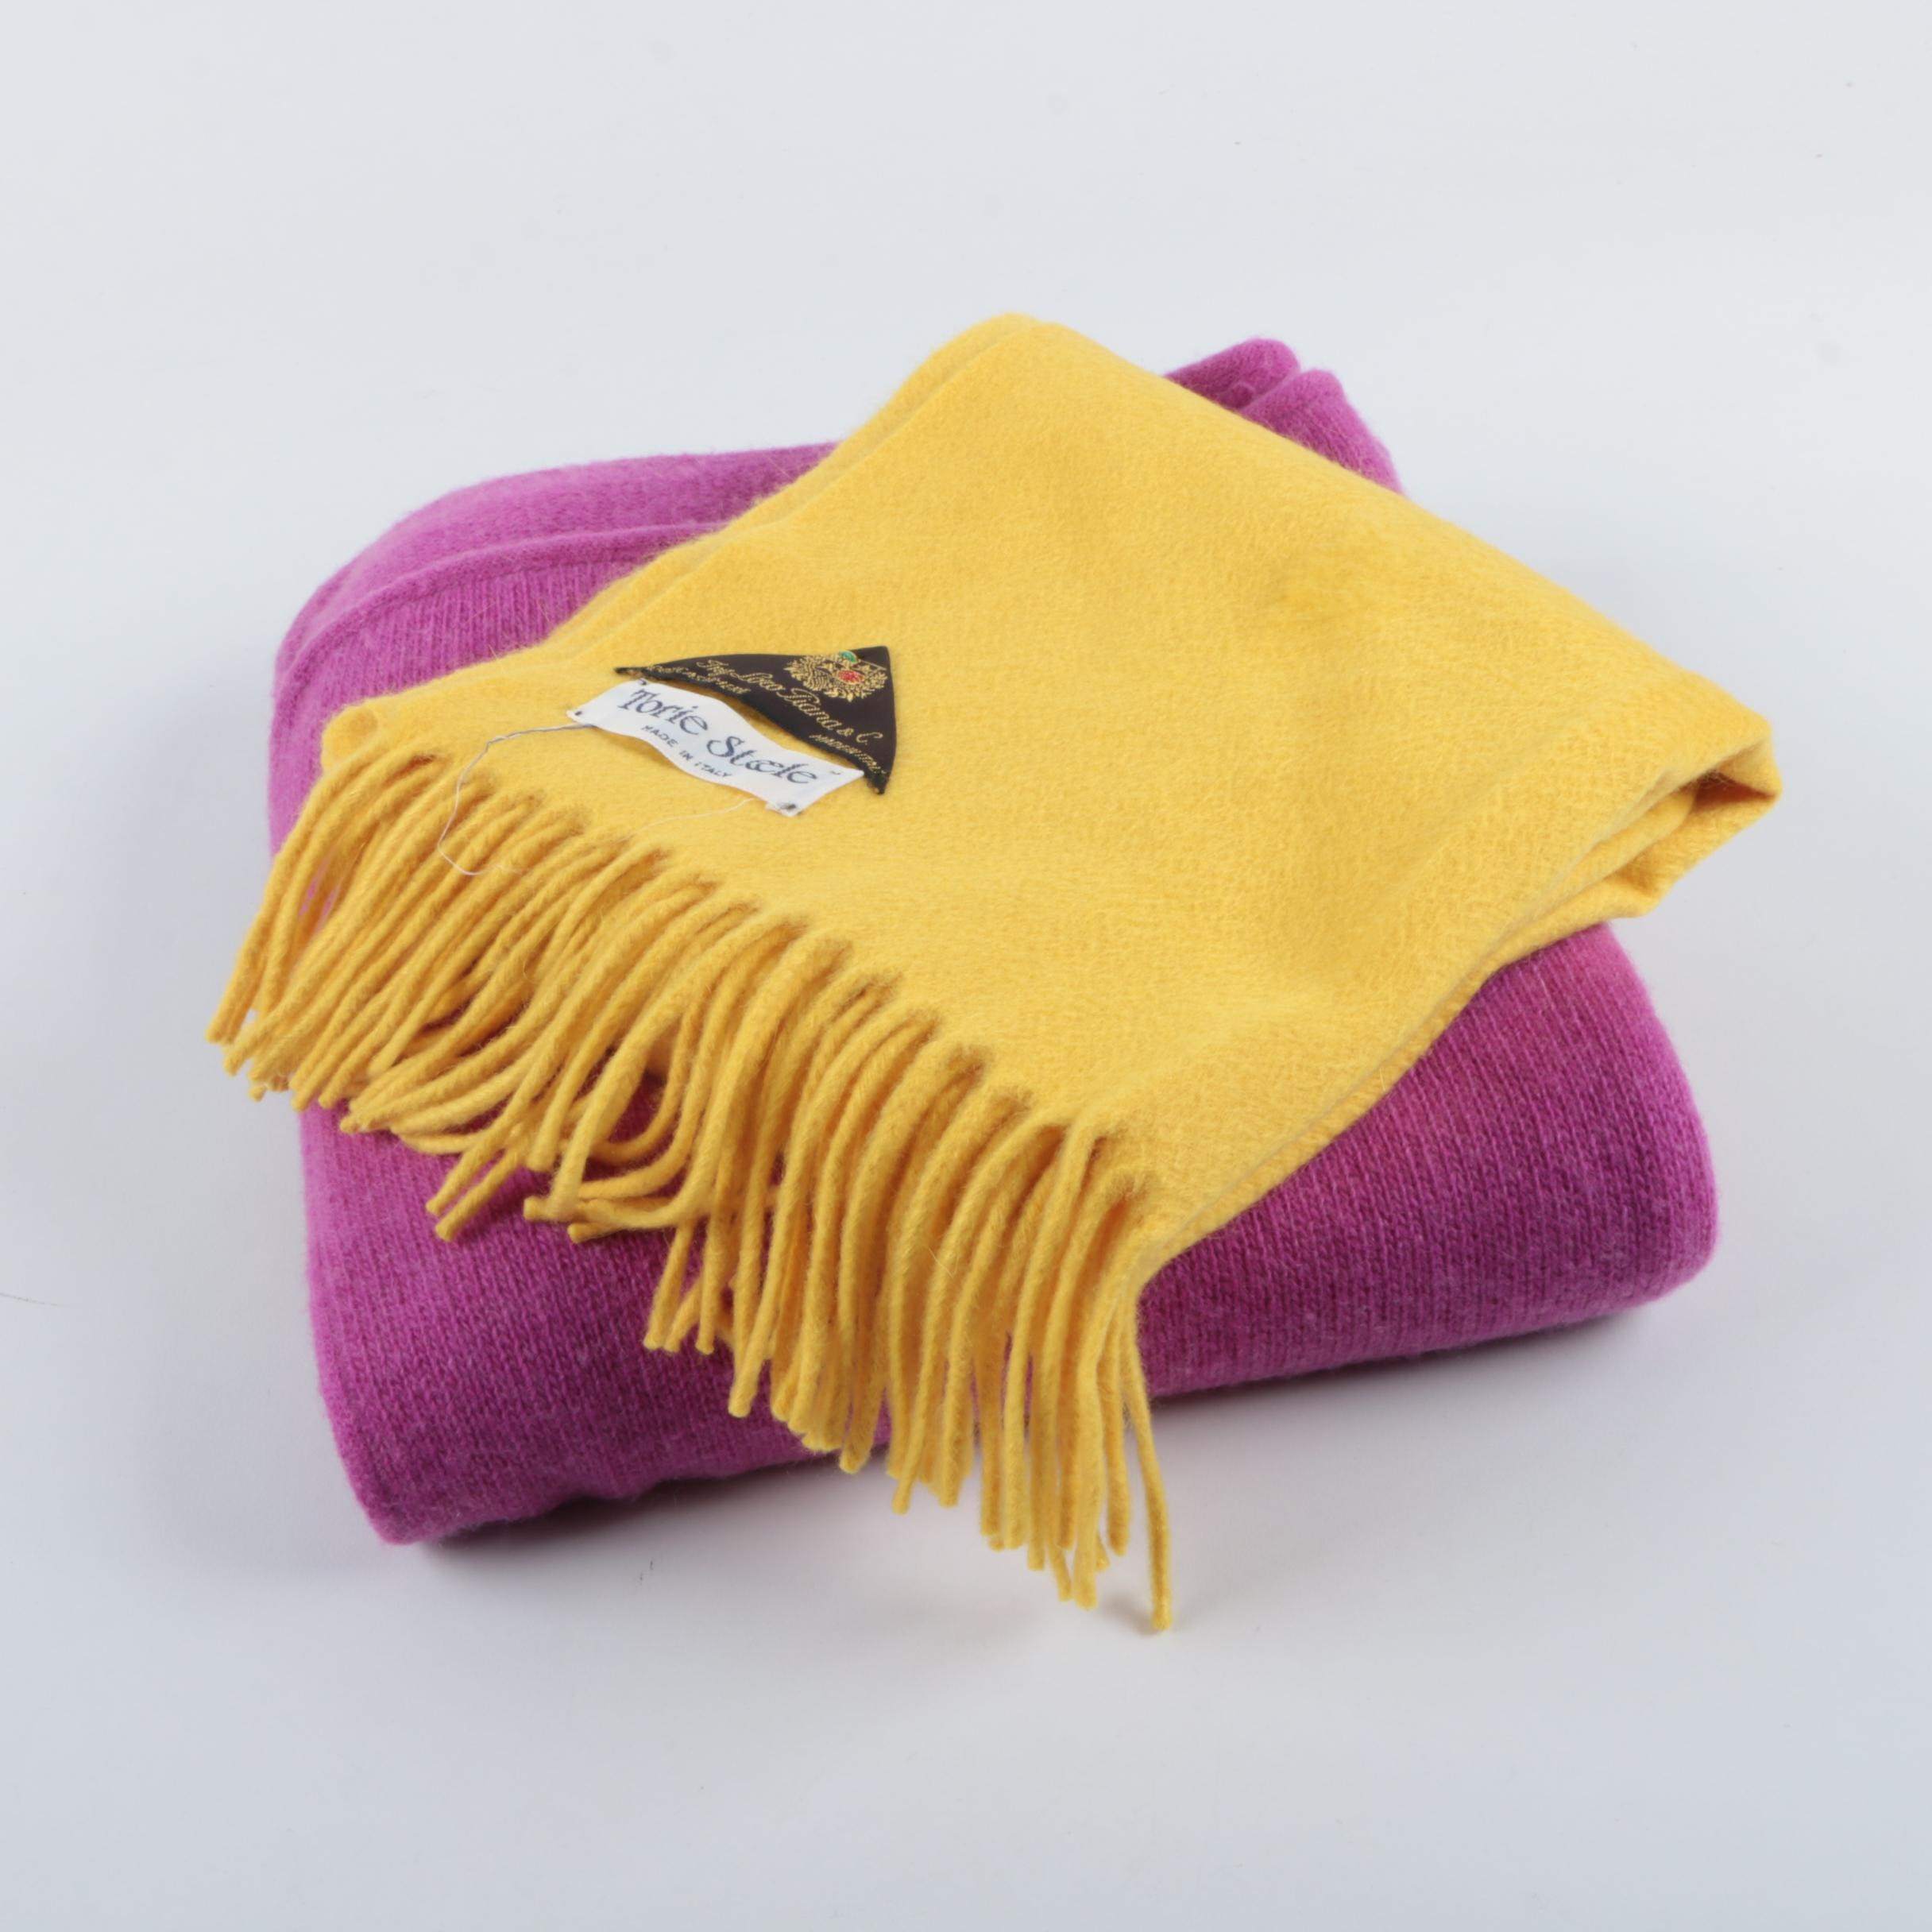 Diane Merrick and Torie Steele Loro Piana Cashmere Scarves